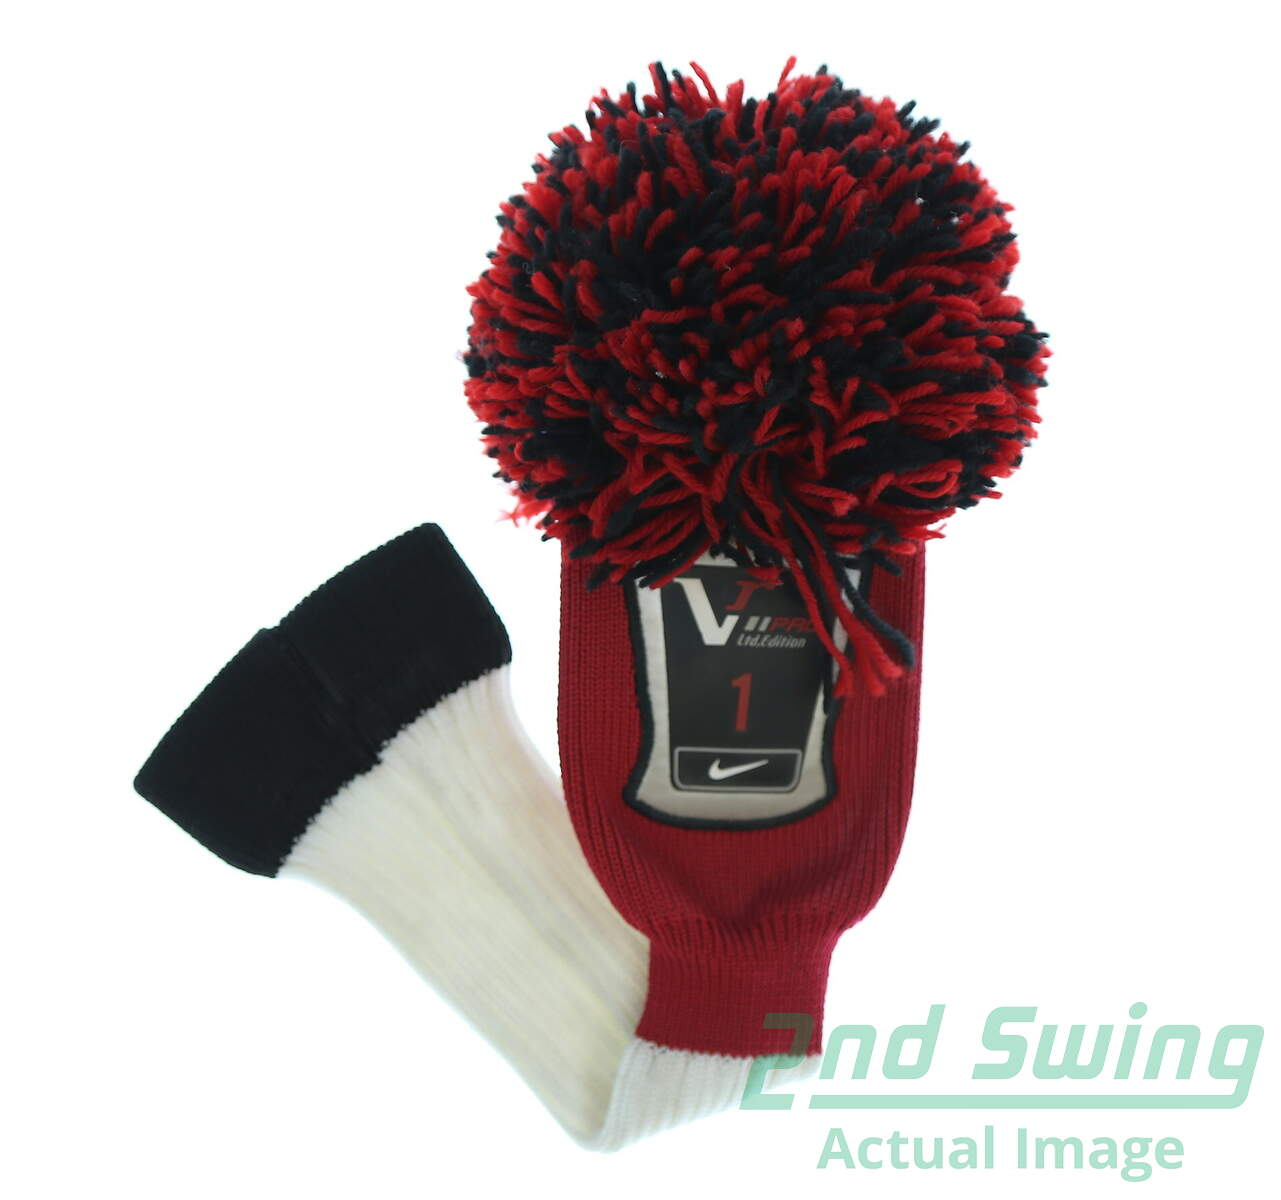 b18d2534033 Used Nike VR Pro Limited Edition Pom Pom Driver Headcover Red White Black